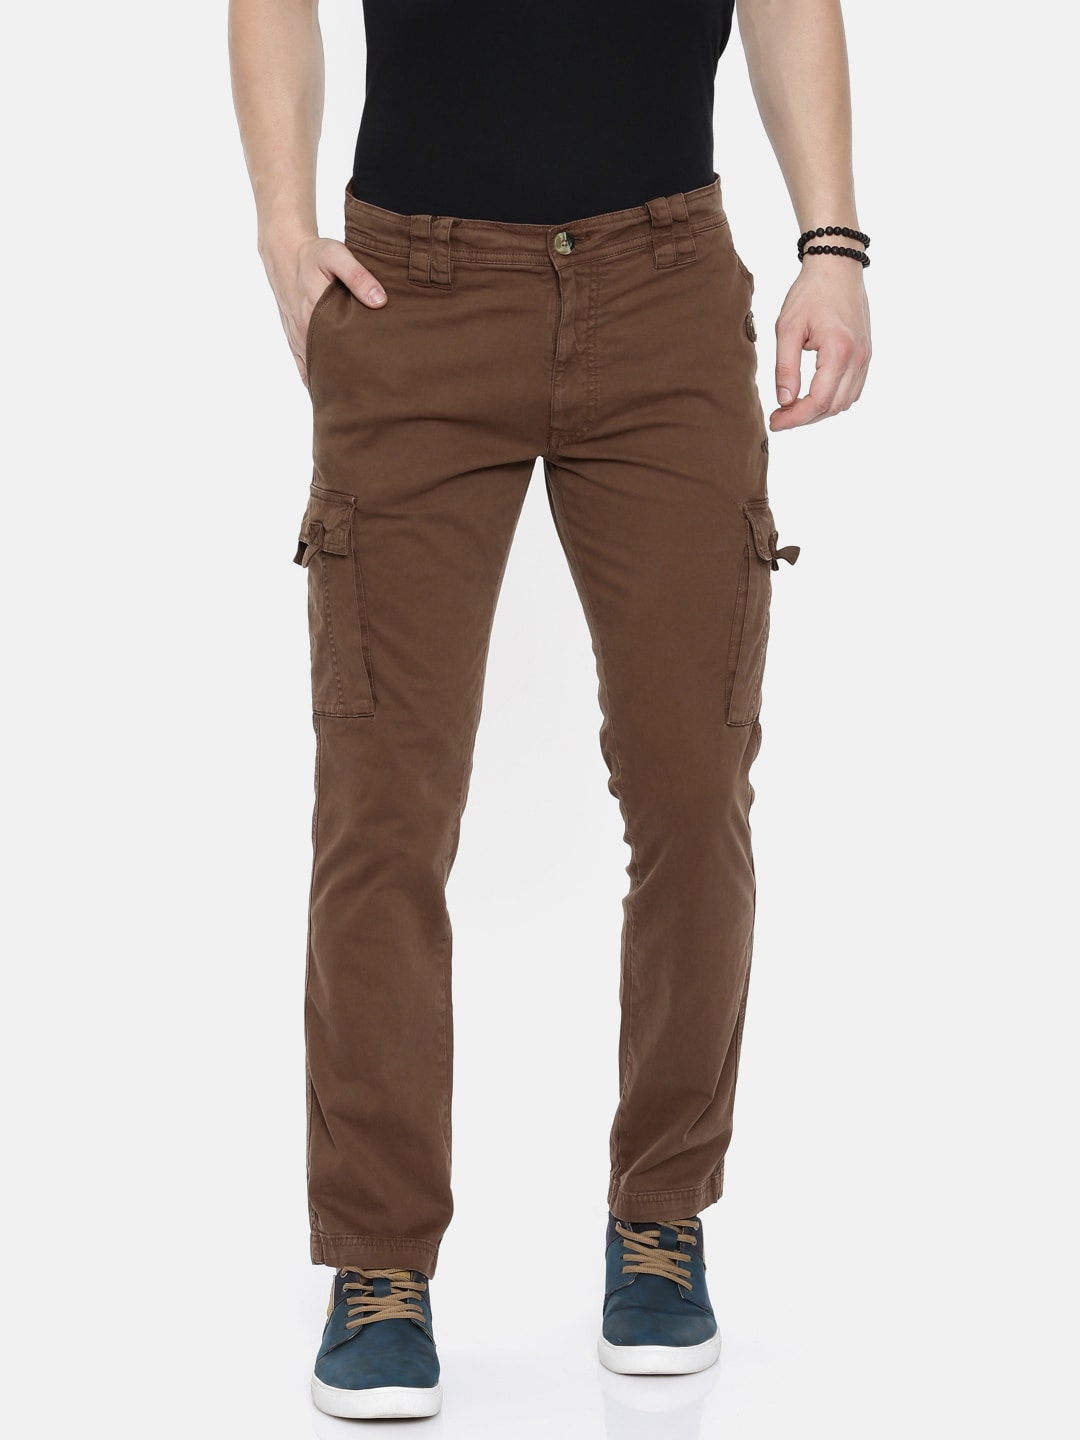 212bda5680f11f Nero Trousers Cargo Track Pants Trouserss Harem - Buy Nero Trousers Cargo  Track Pants Trouserss Harem online in India